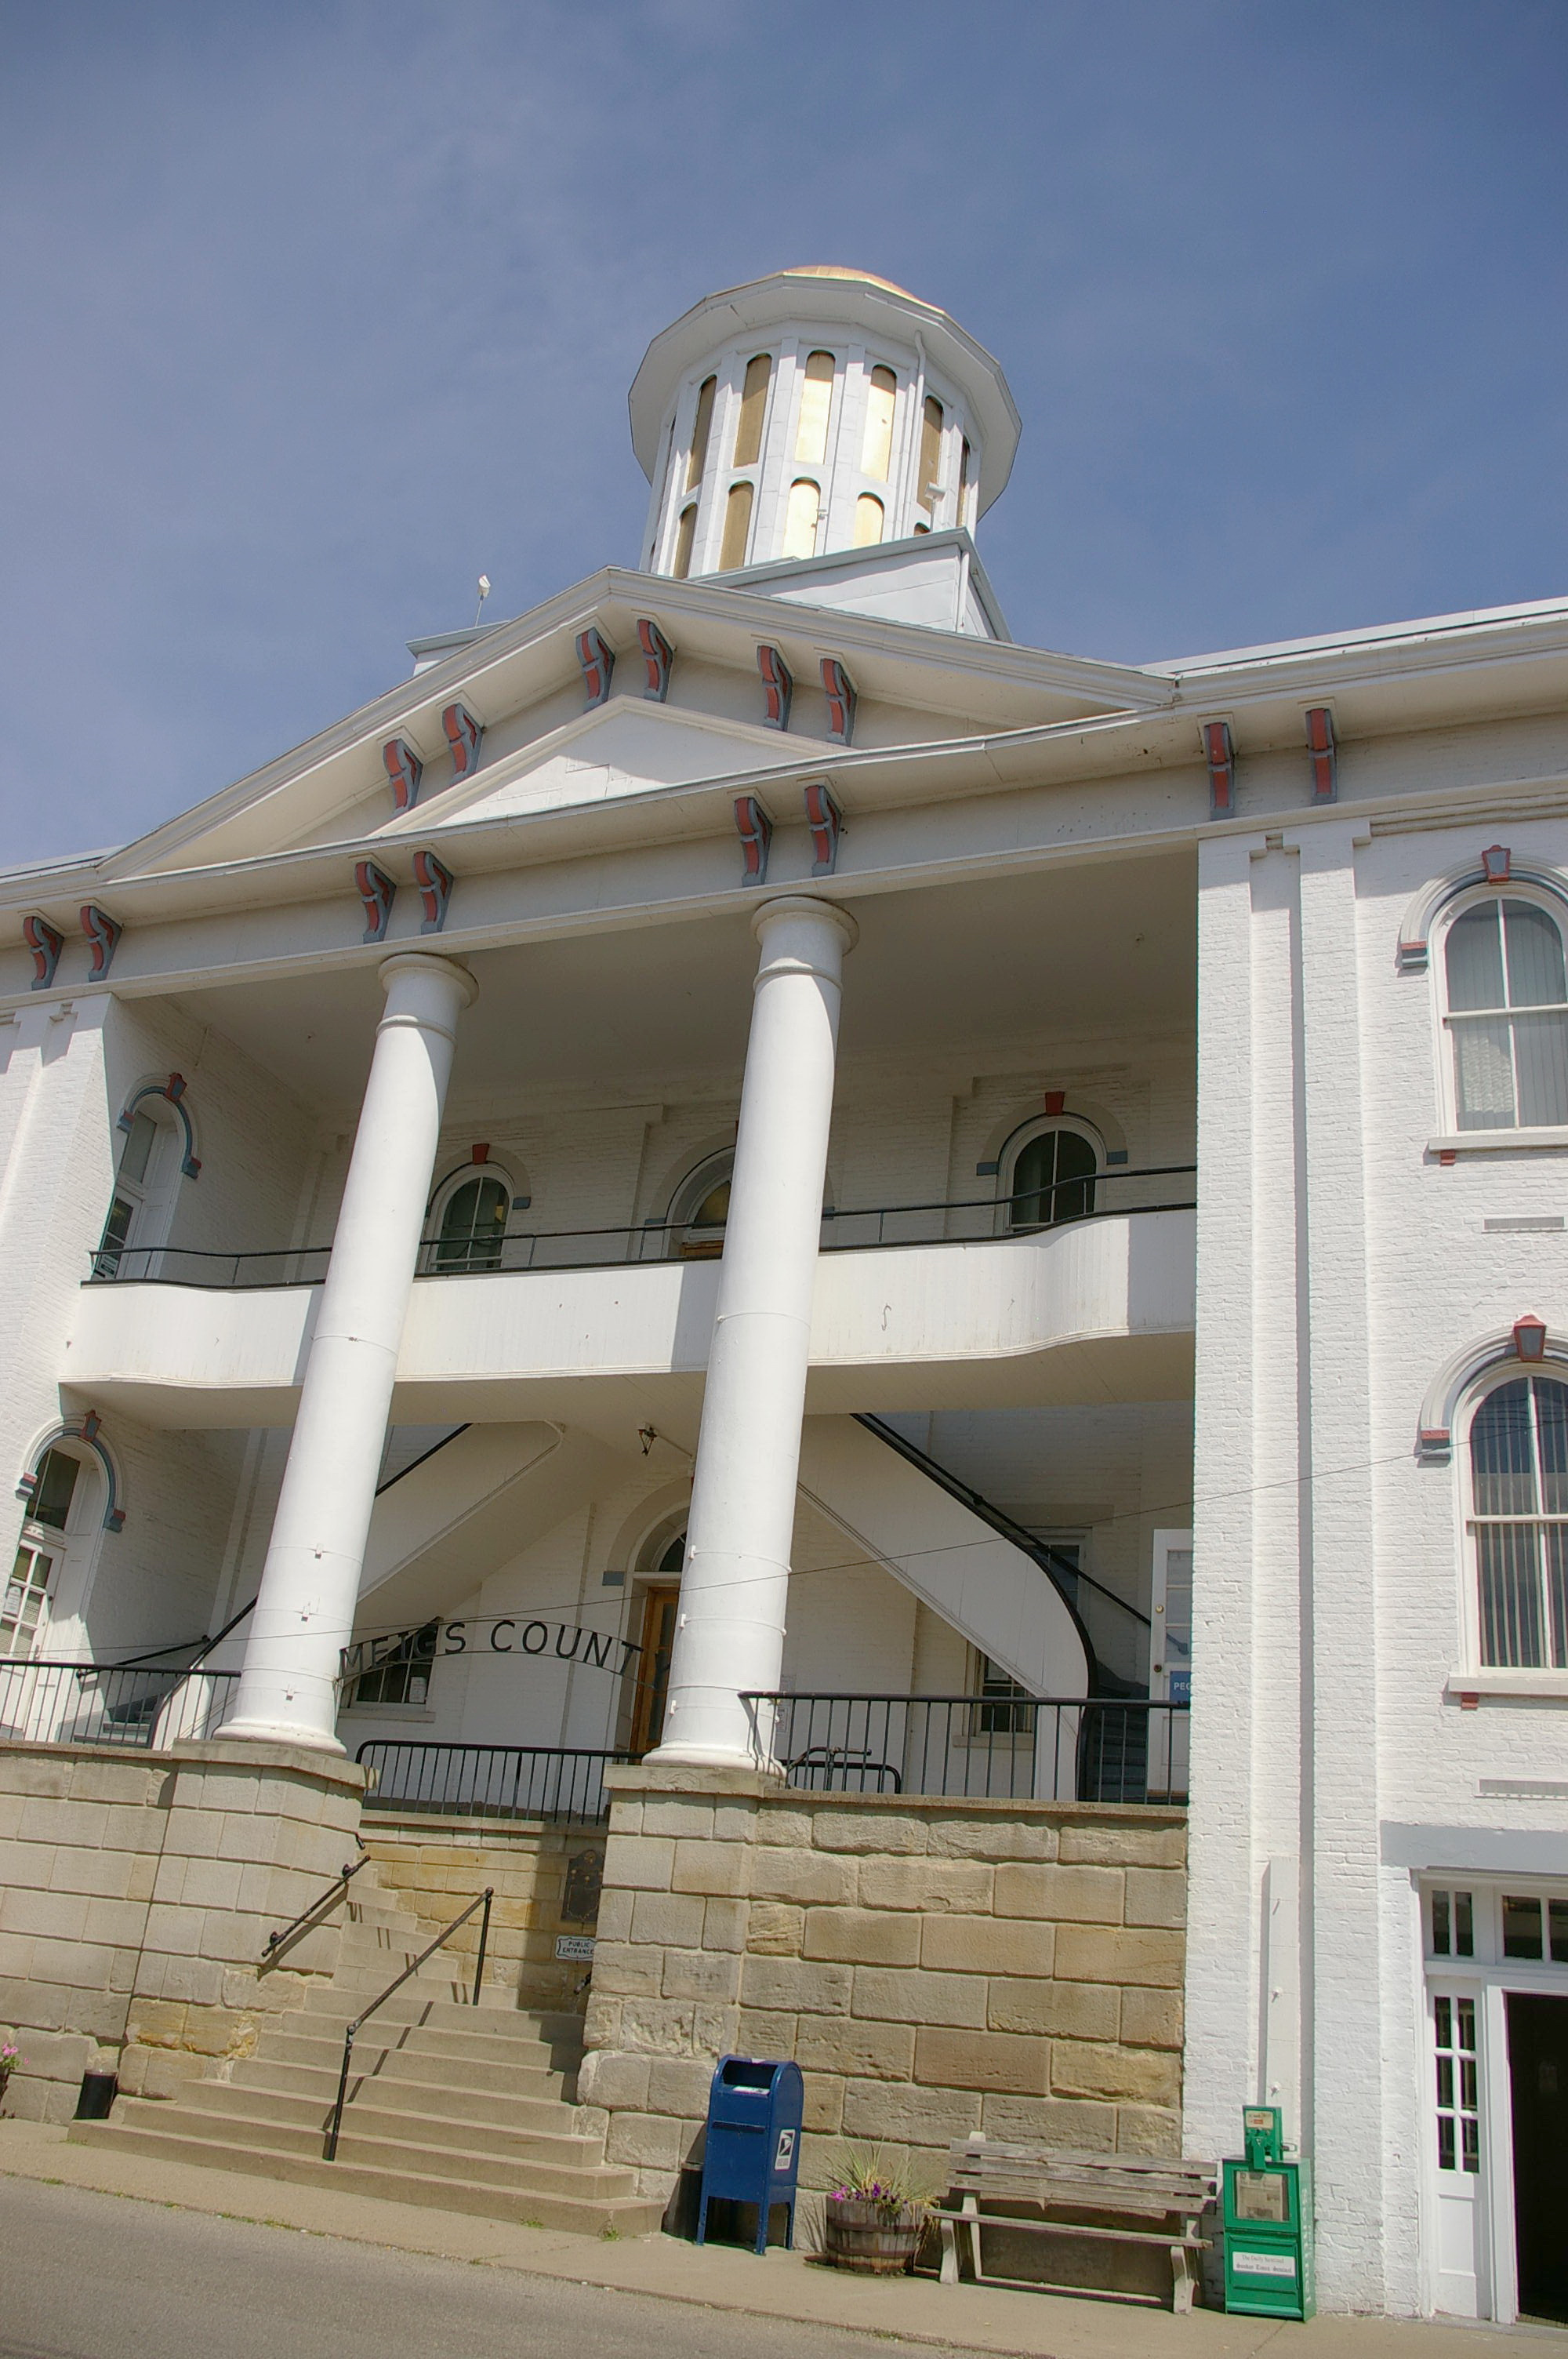 Meigs County Us Courthouses